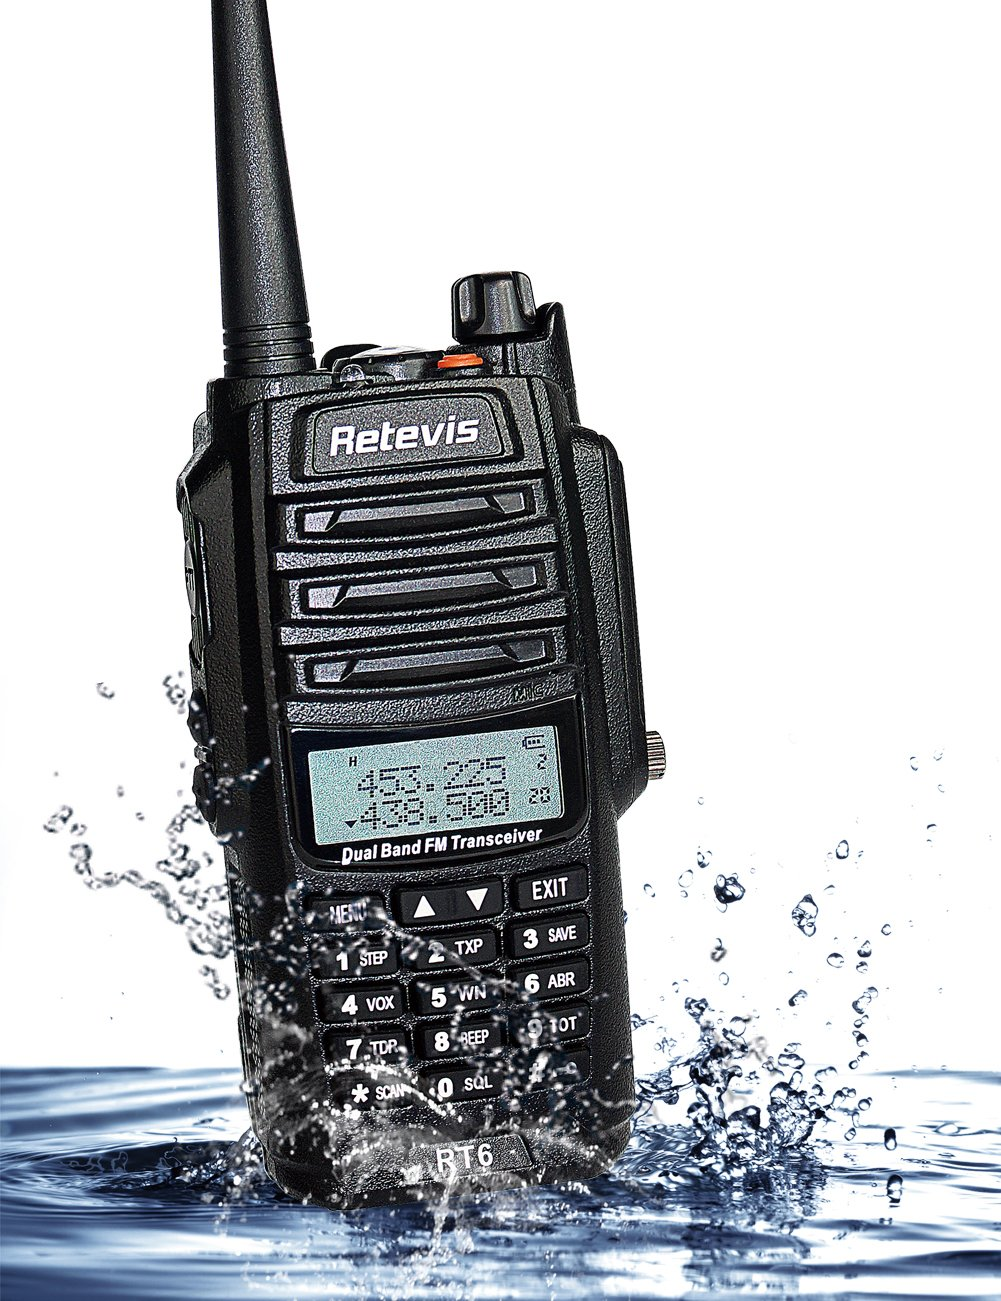 Retevis RT6 2 Way Radio IP67 Waterproof Dual Band VHF/UHF 136-174Mhz/400-520Mhz Walkie Talkie with Earpiece (5 Pack) and Programming Cable (1 Pack) by Retevis (Image #2)